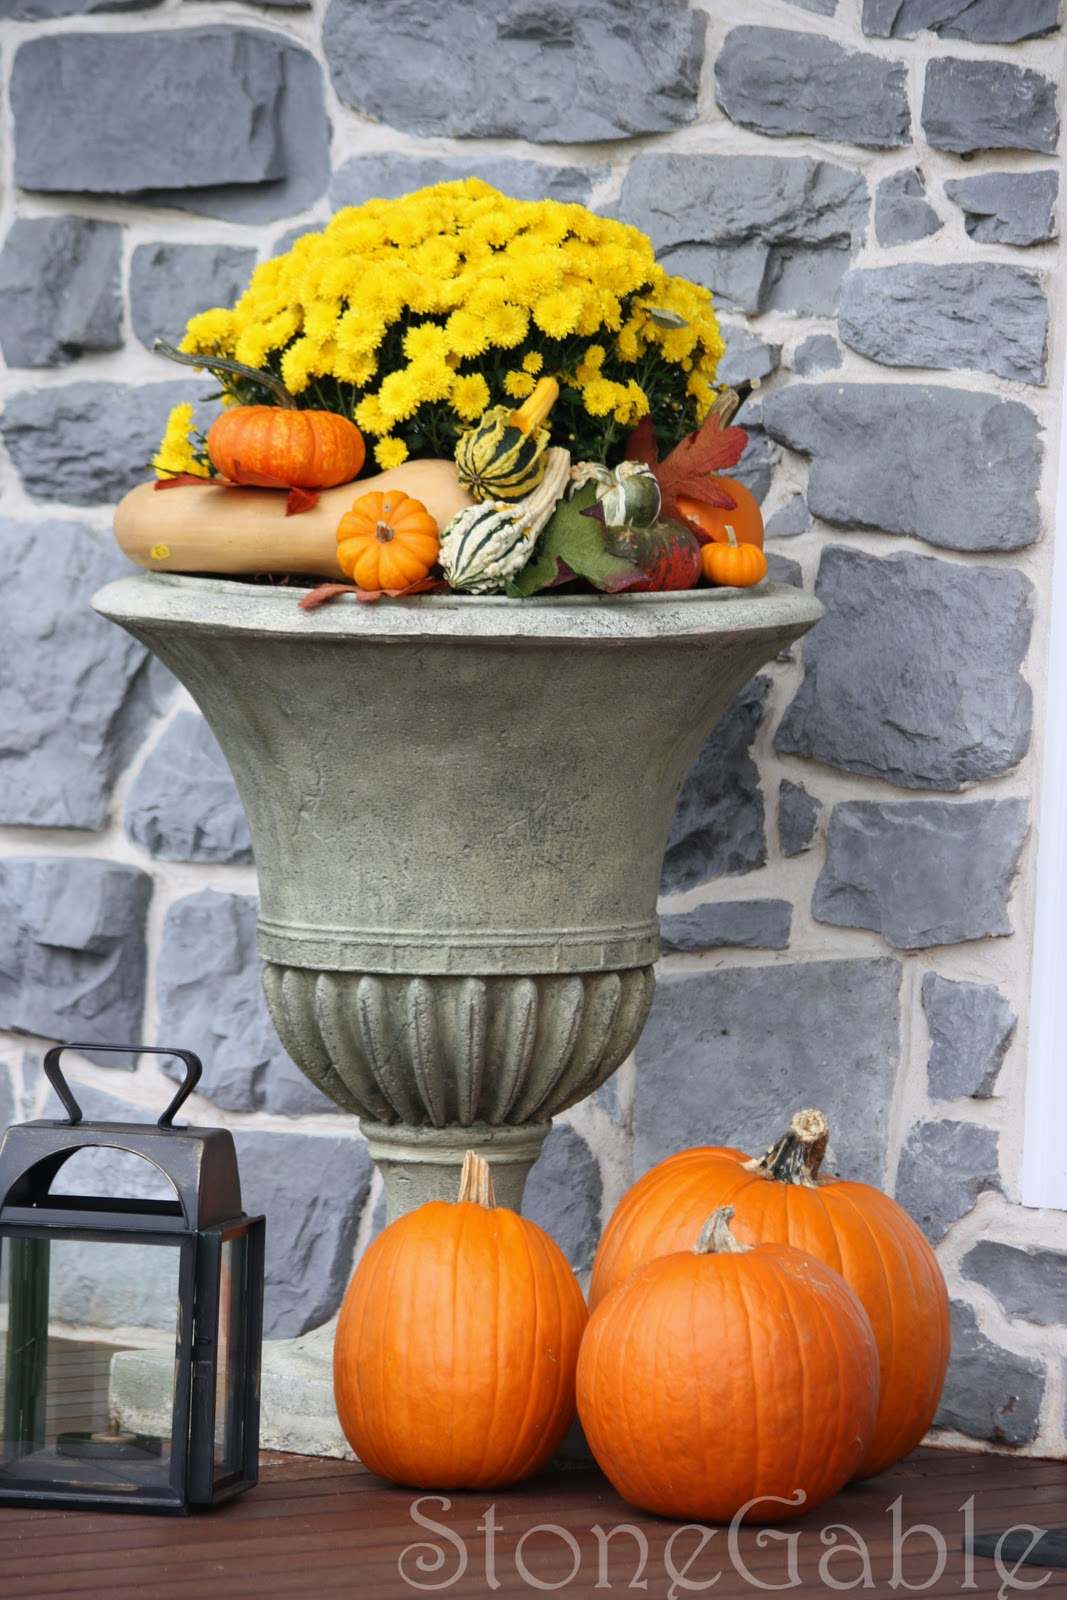 Outdoor fall decorating ideas front porch -  I Decided Not To Go With The Hay Bales And Corn Stocks I Usually Use In Fall Outdoor Decorating A Little Cleaner More Streamlined Suites Me Just Fine